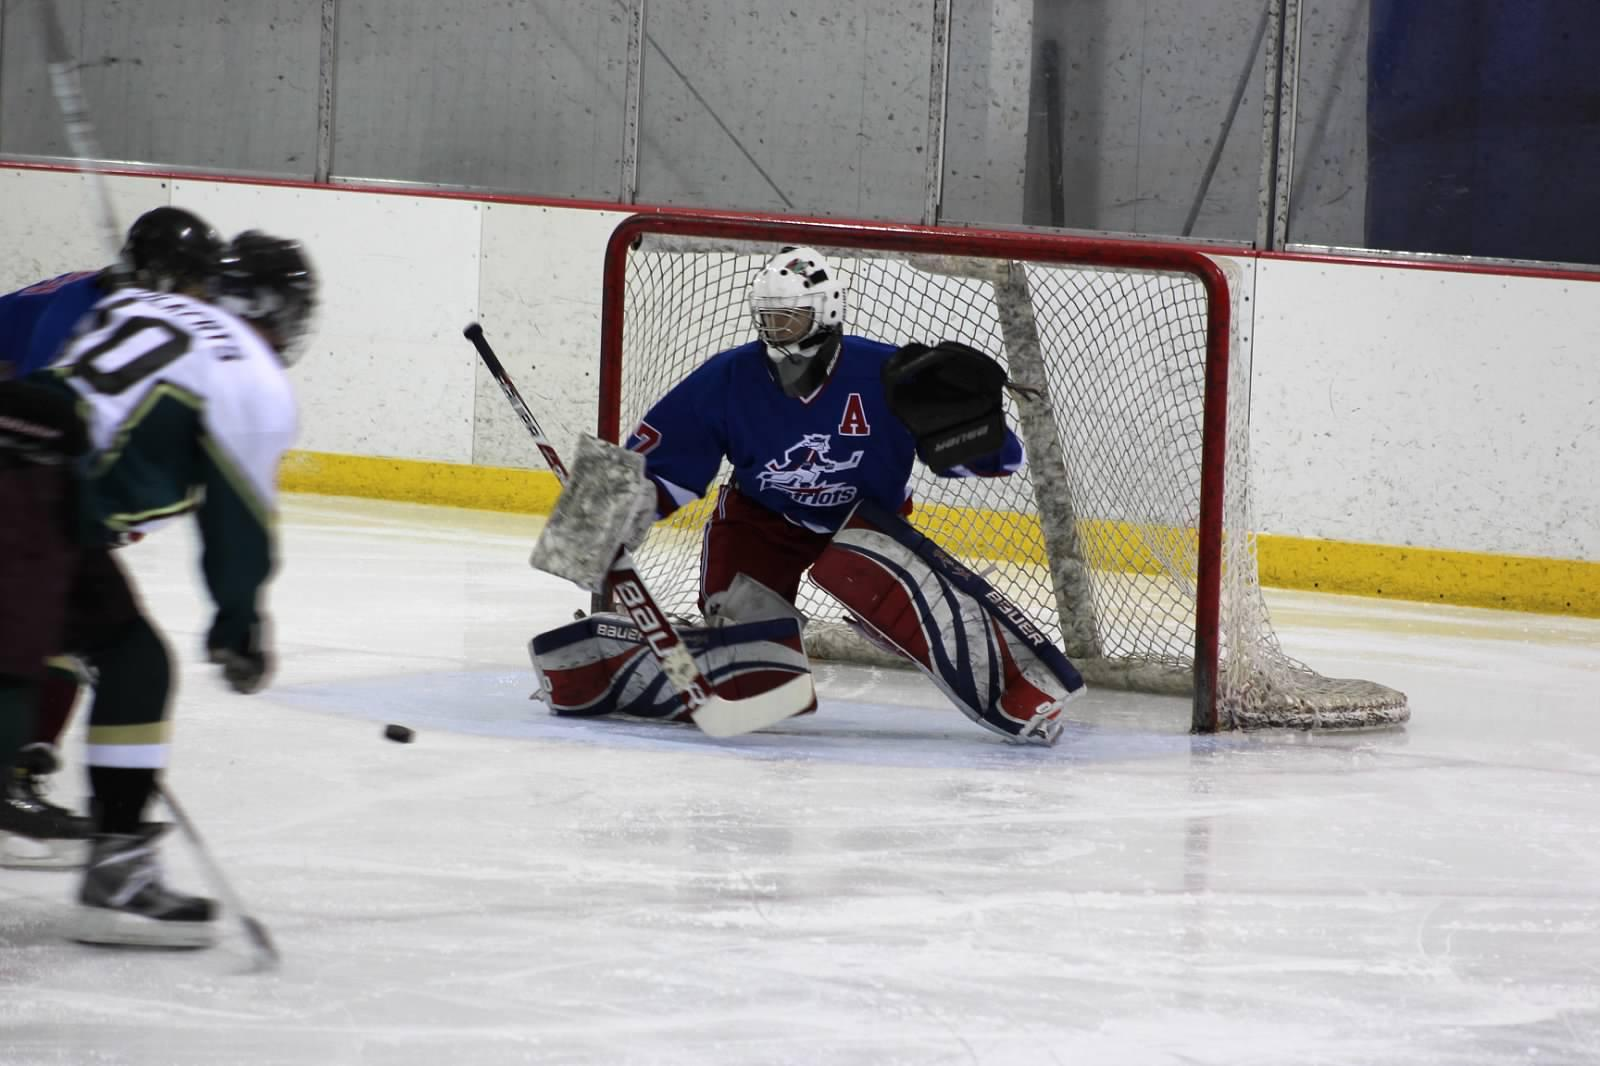 Linganore/TJ hockey goalie Devin Shields makes a pad save.  Courtesy of Mrs. Ericsson